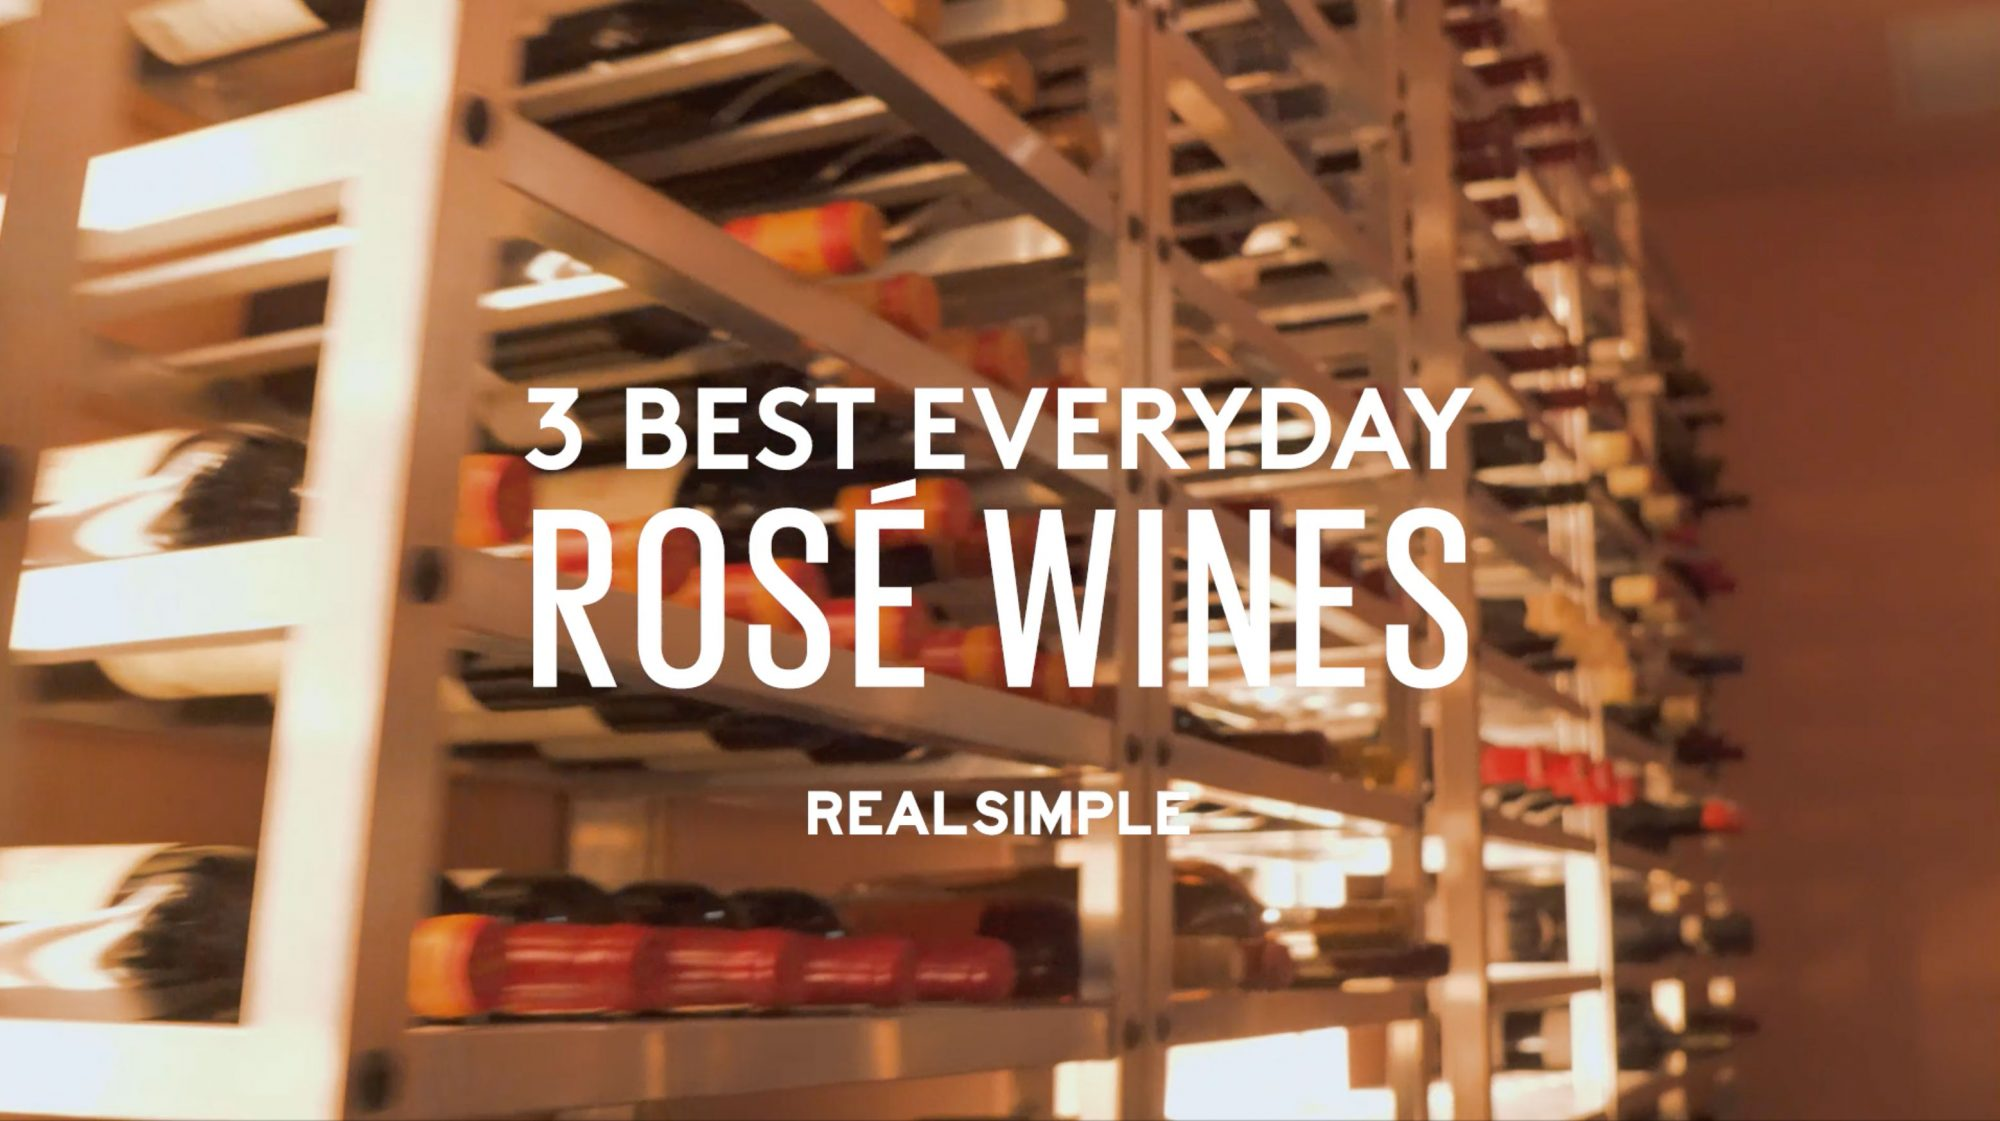 3 Best Everyday Rose Wines